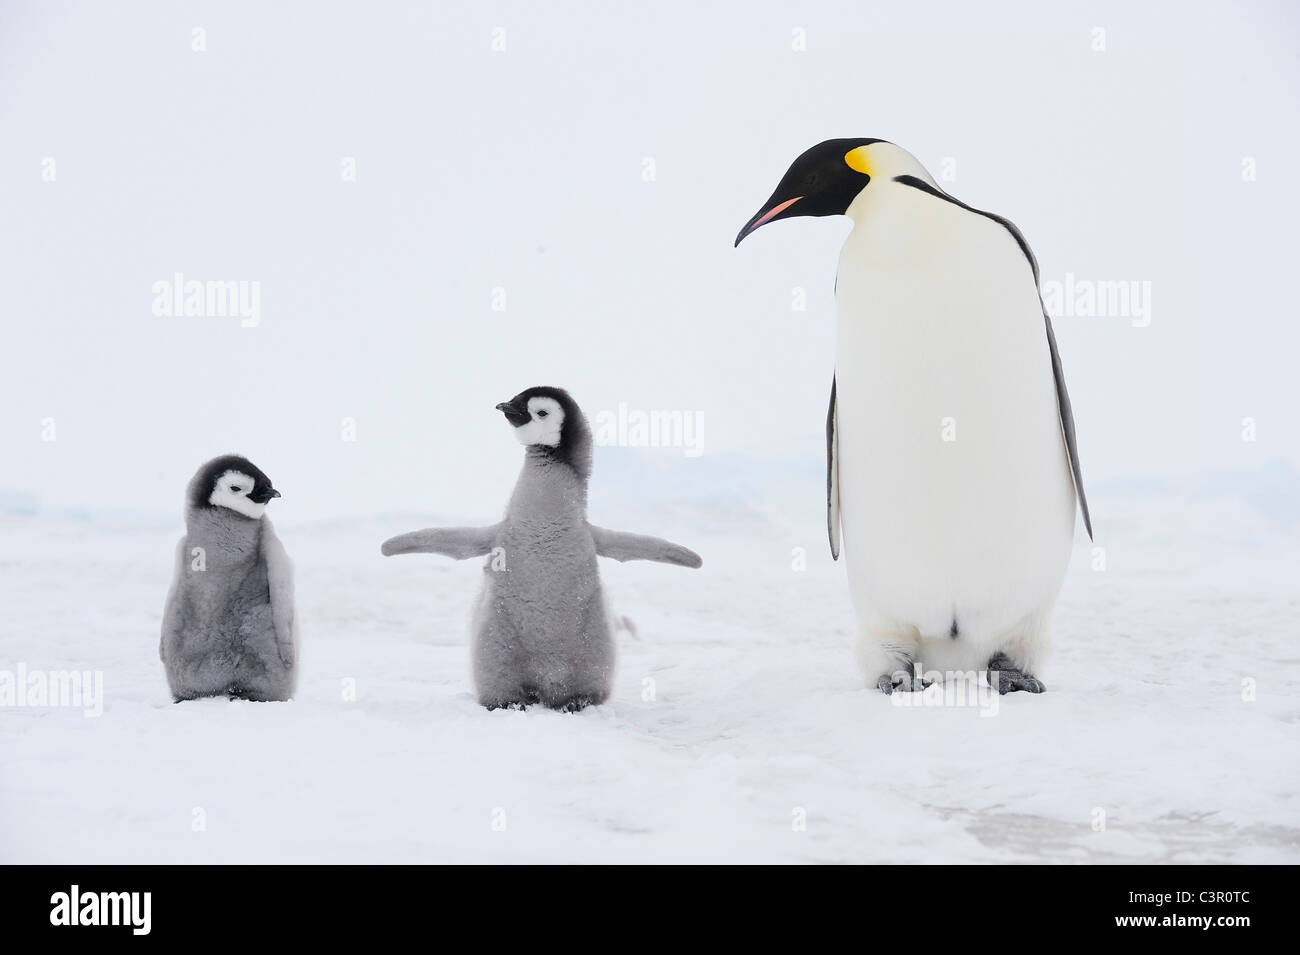 Antarctica, View of Emperor penguin with chicks - Stock Image